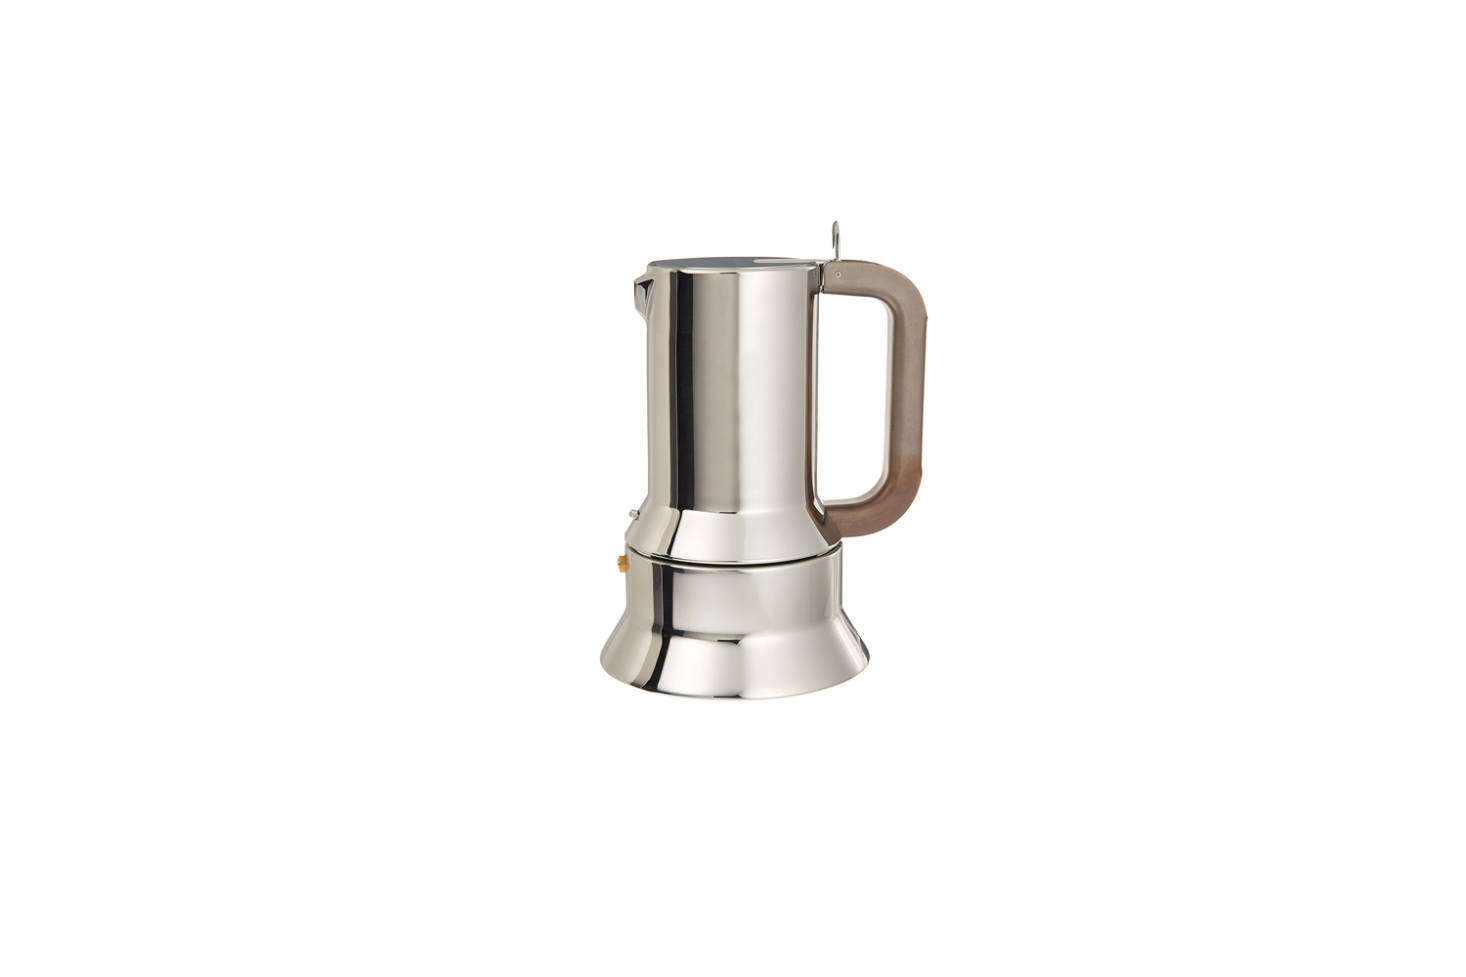 On the stove is an Alessi 9090 Coffee Maker, designed in 79 by Richard Sapper. It&#8